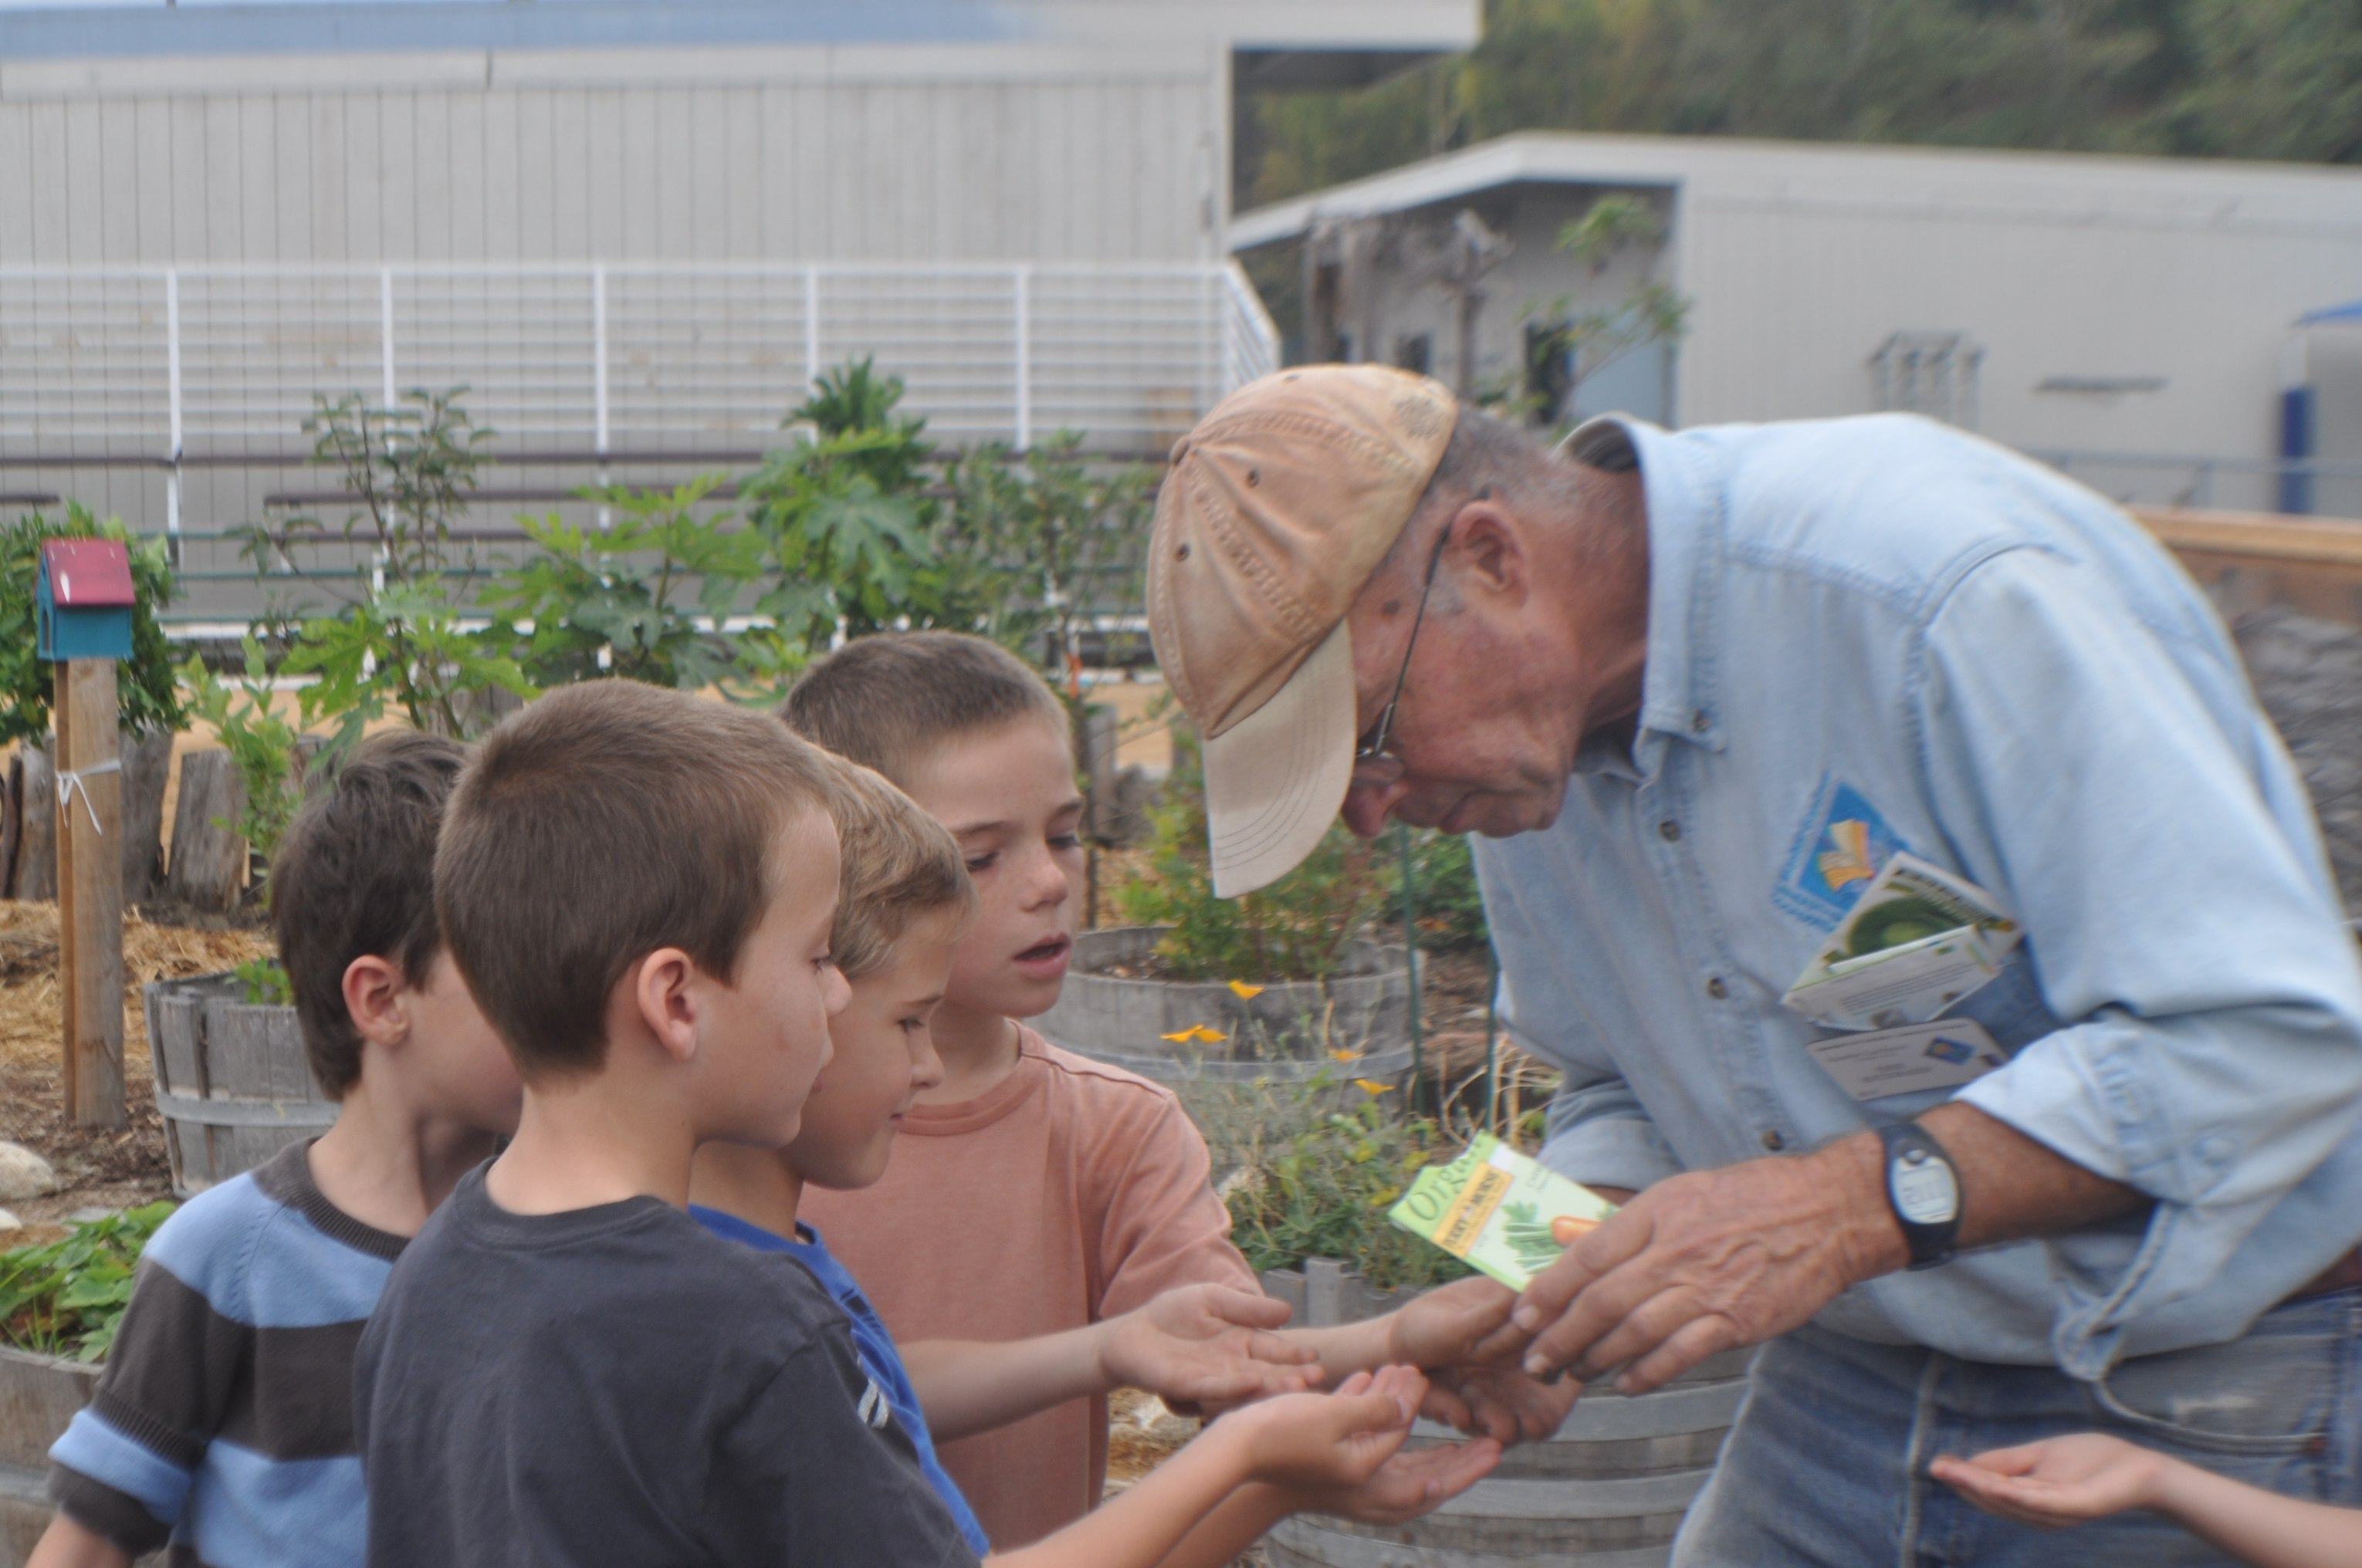 First graders planting seeds handed out by Master Gardener, Erik.